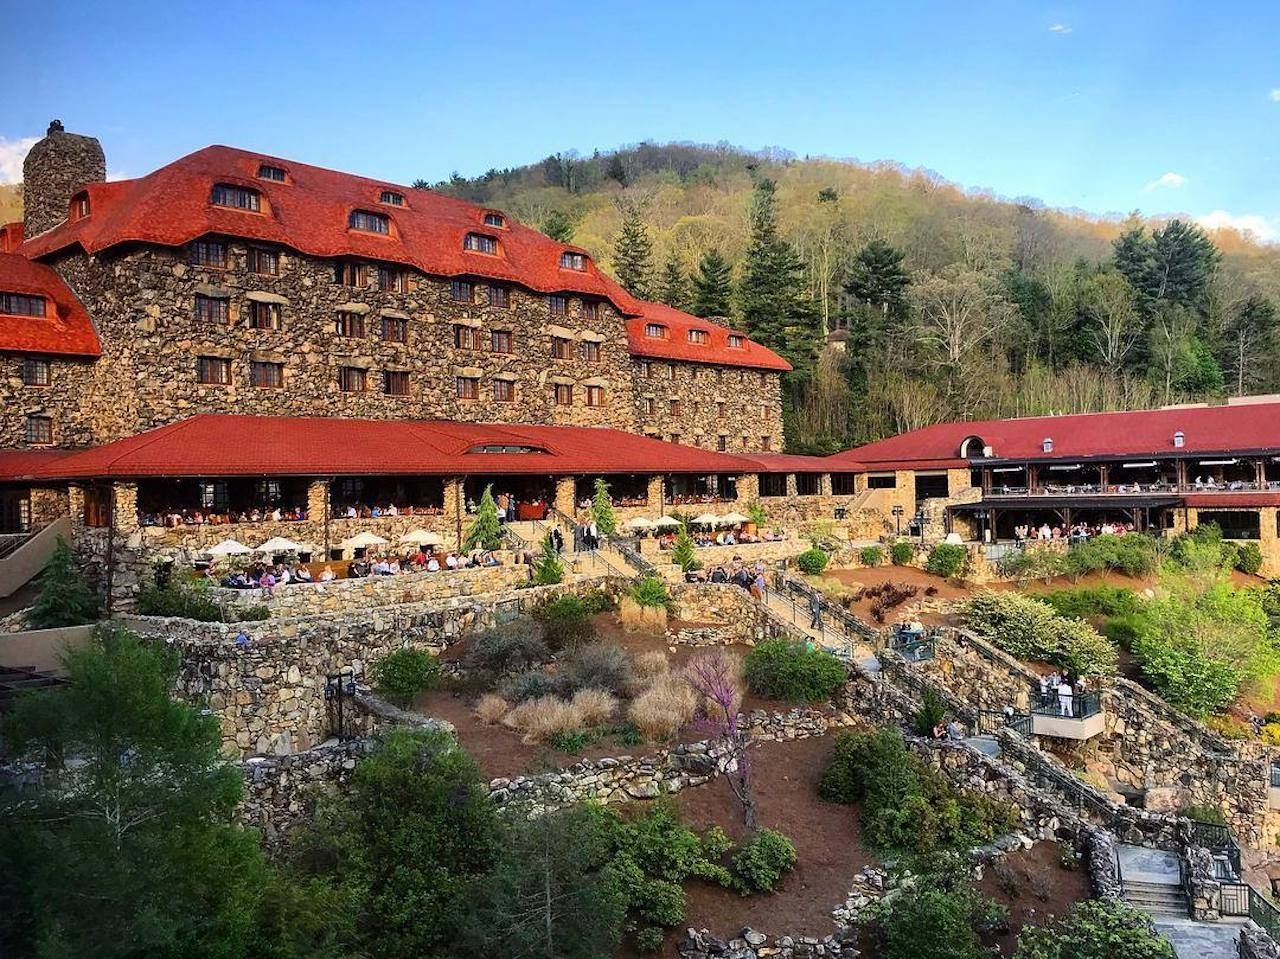 Omni Grove Park Inn, Asheville, North Carolina